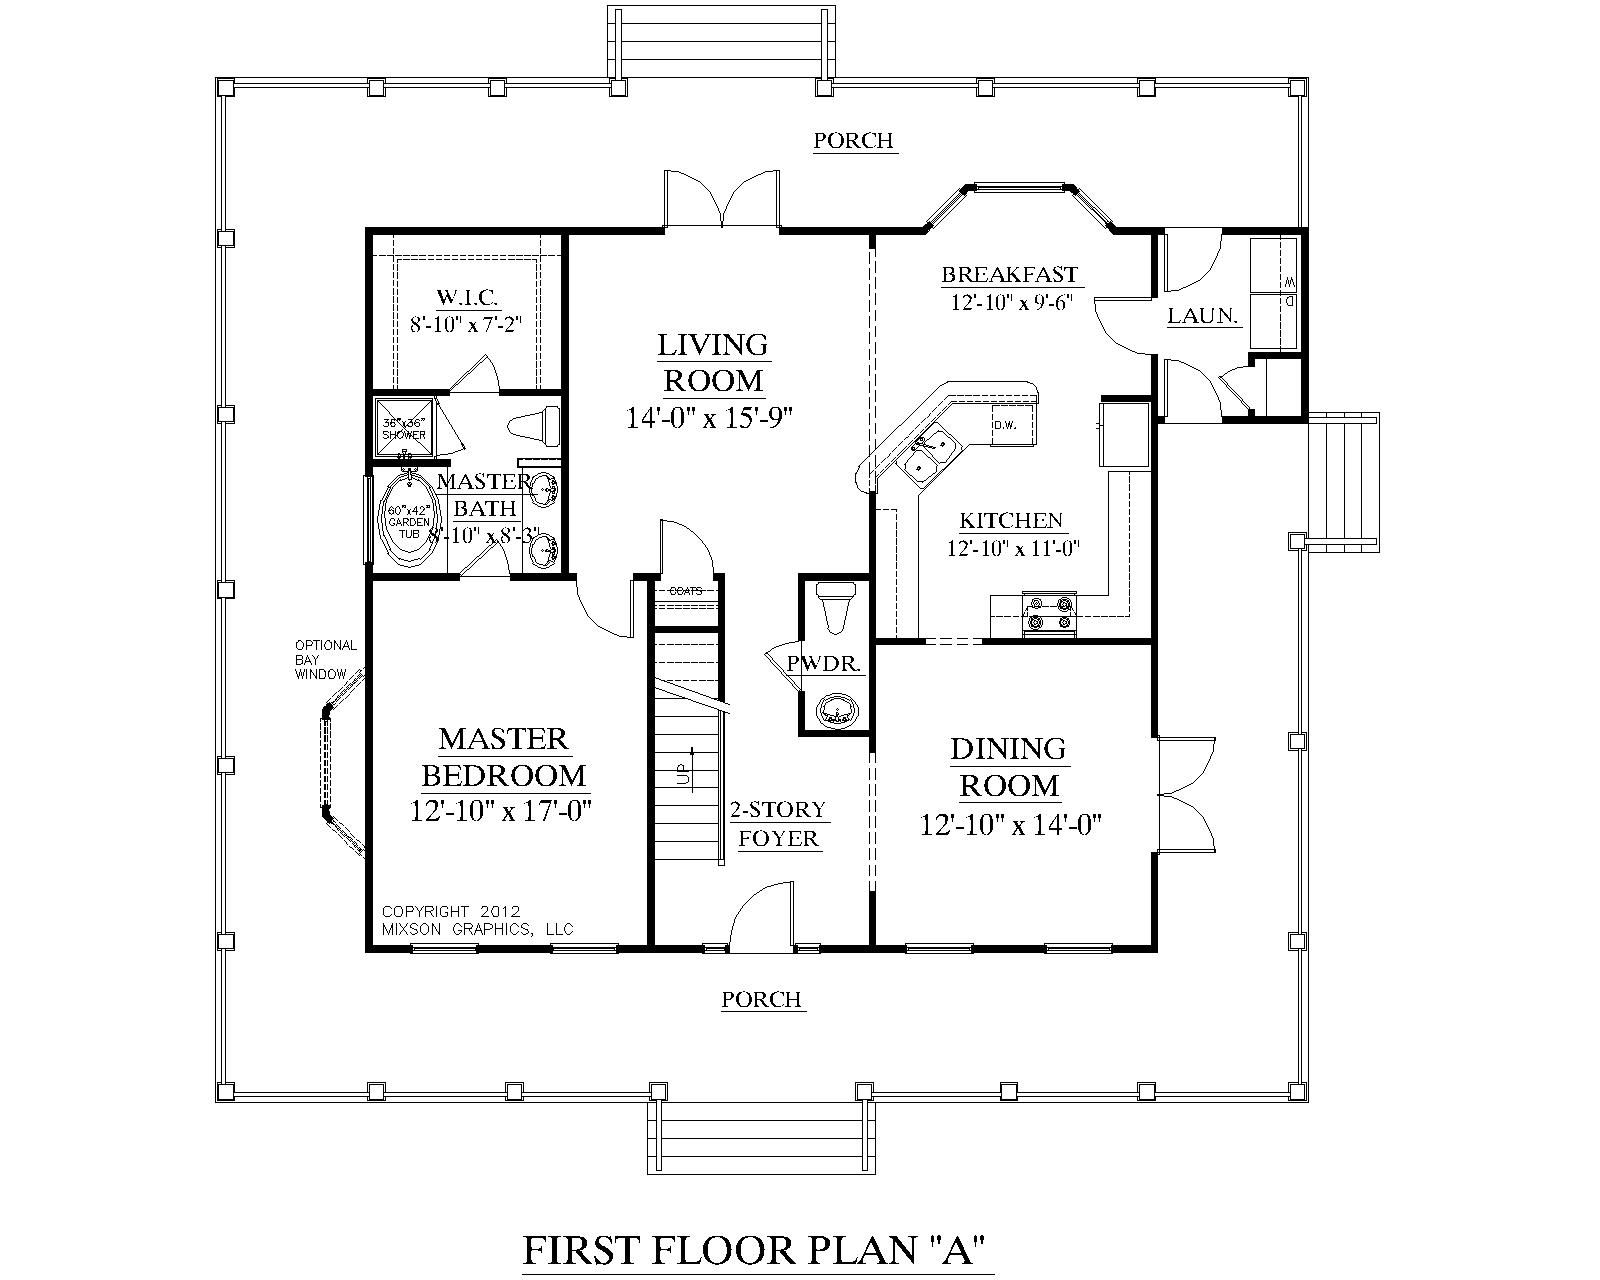 small one bedroom house plans traditional 1 12 story house plan - Small Cottage Plans 2